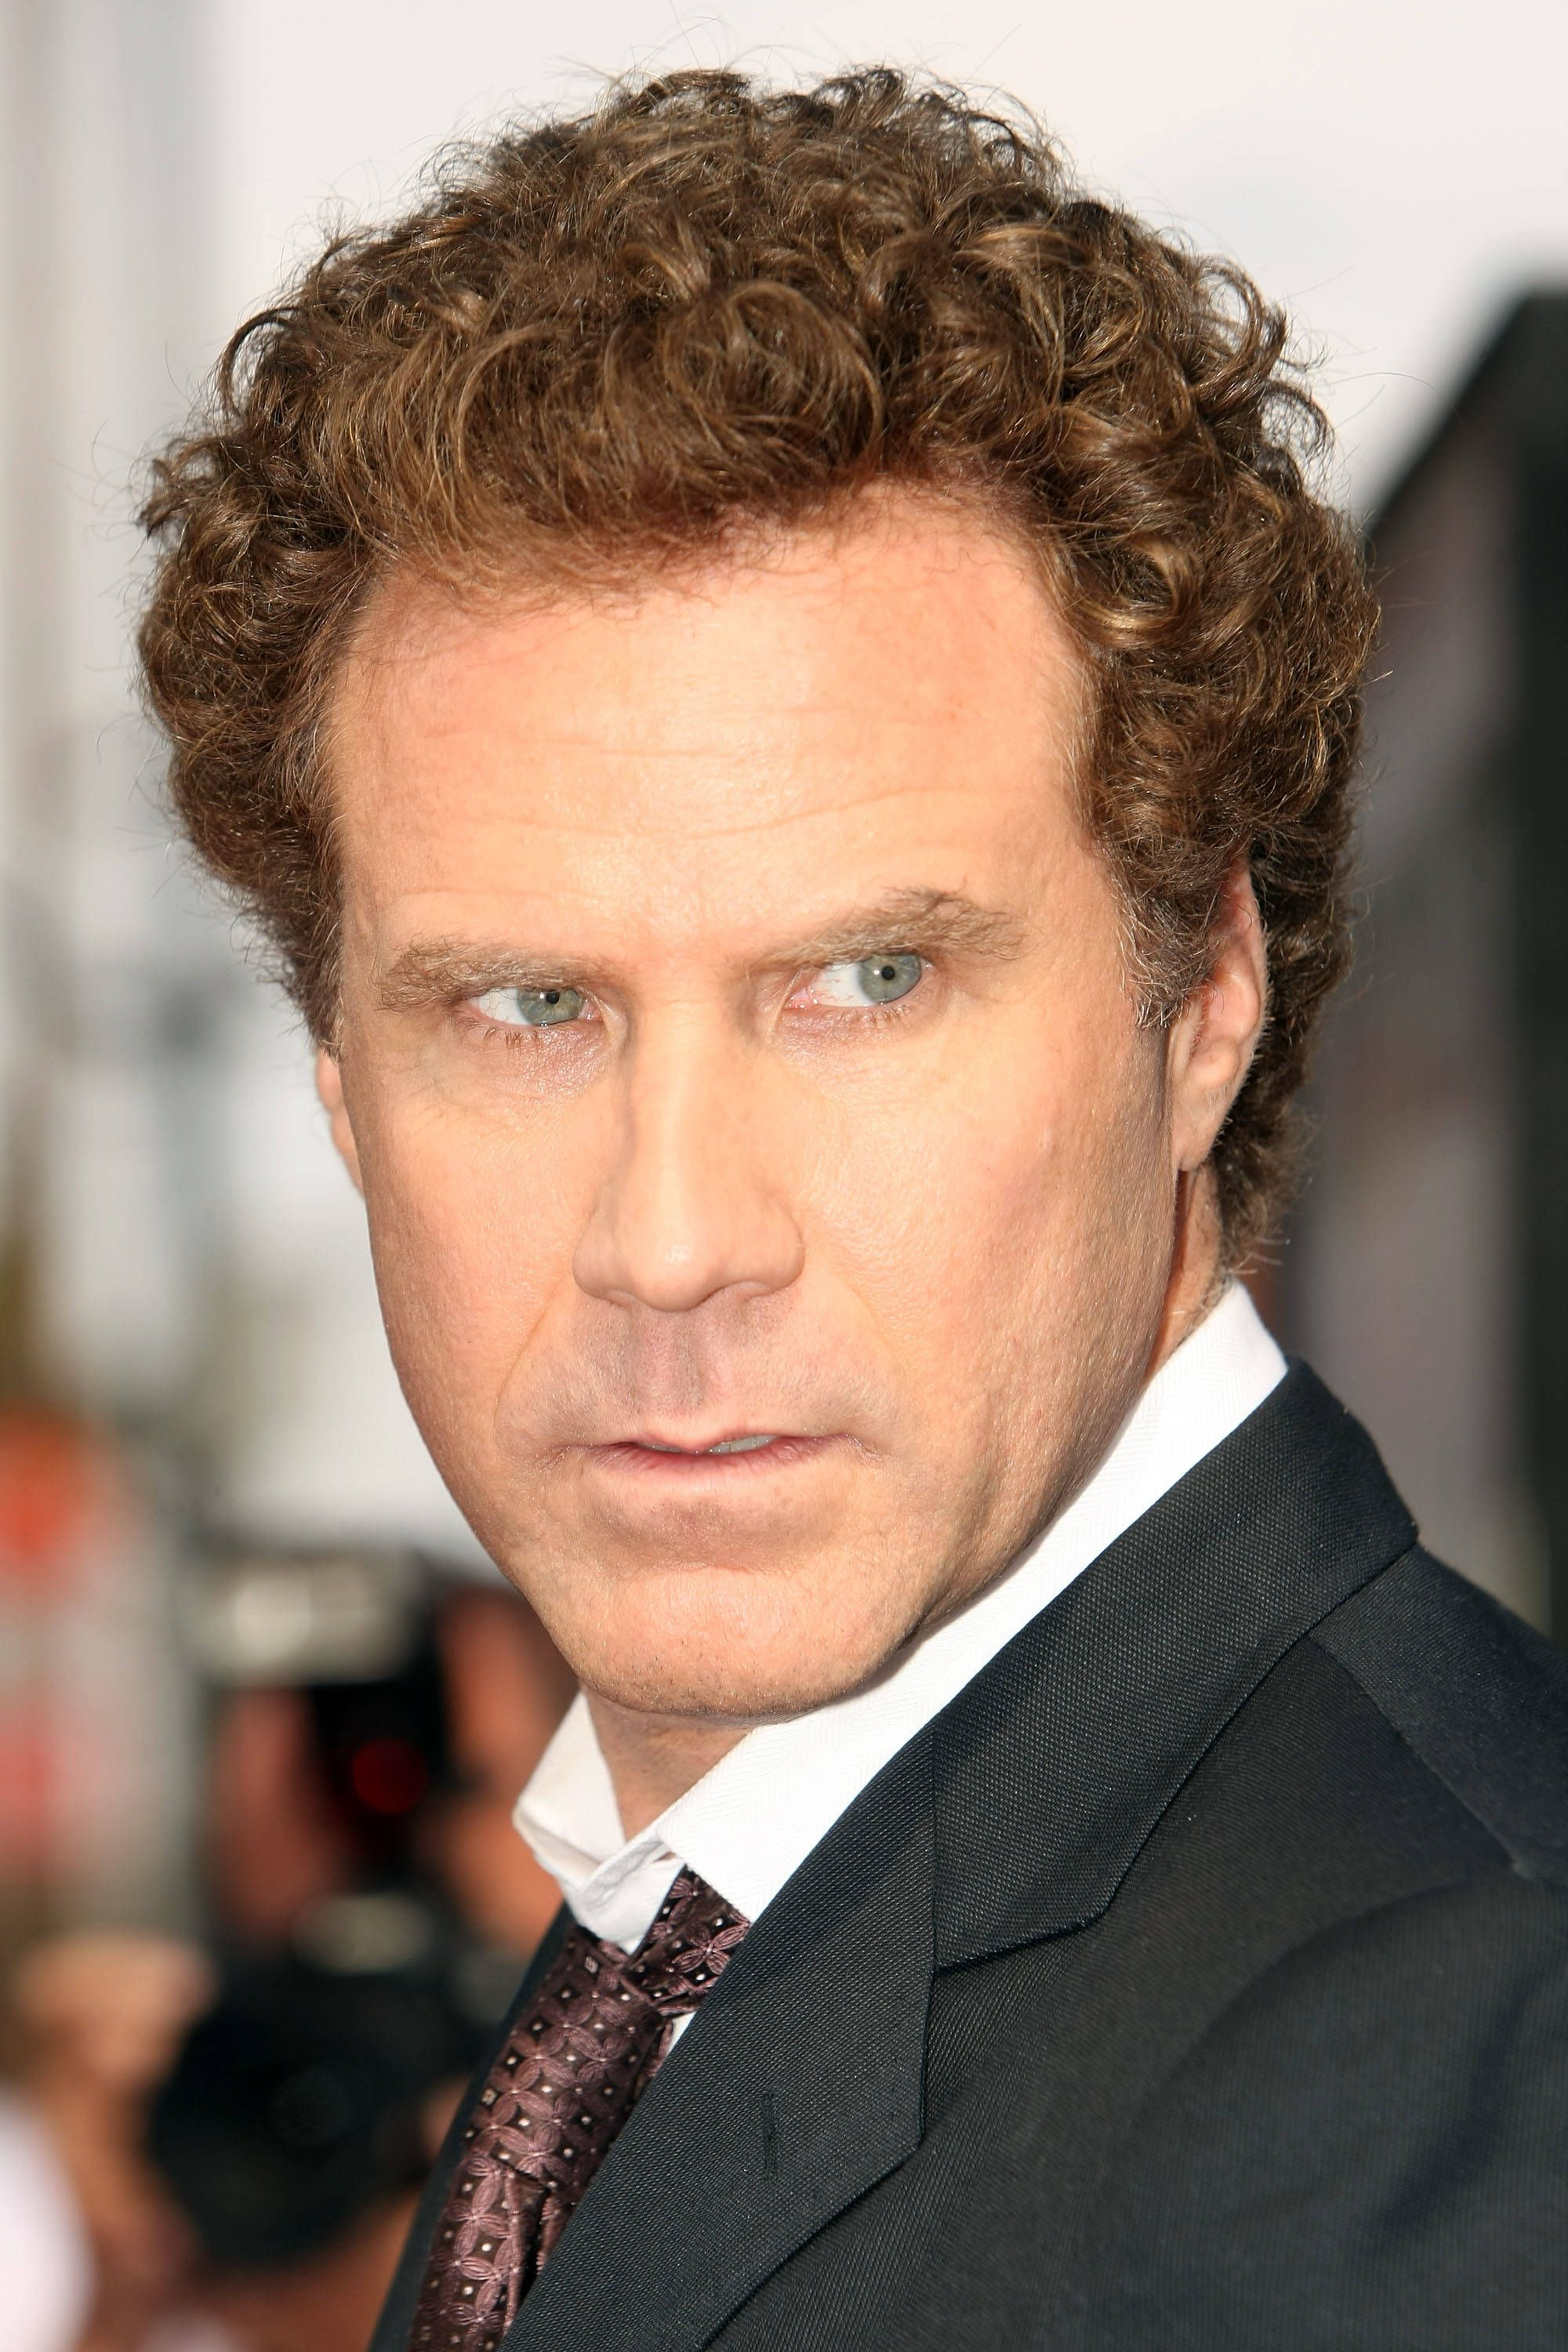 10 Famous Men With Curly Hair Curly Hair Men Mad Men Hair Curly Hair Styles